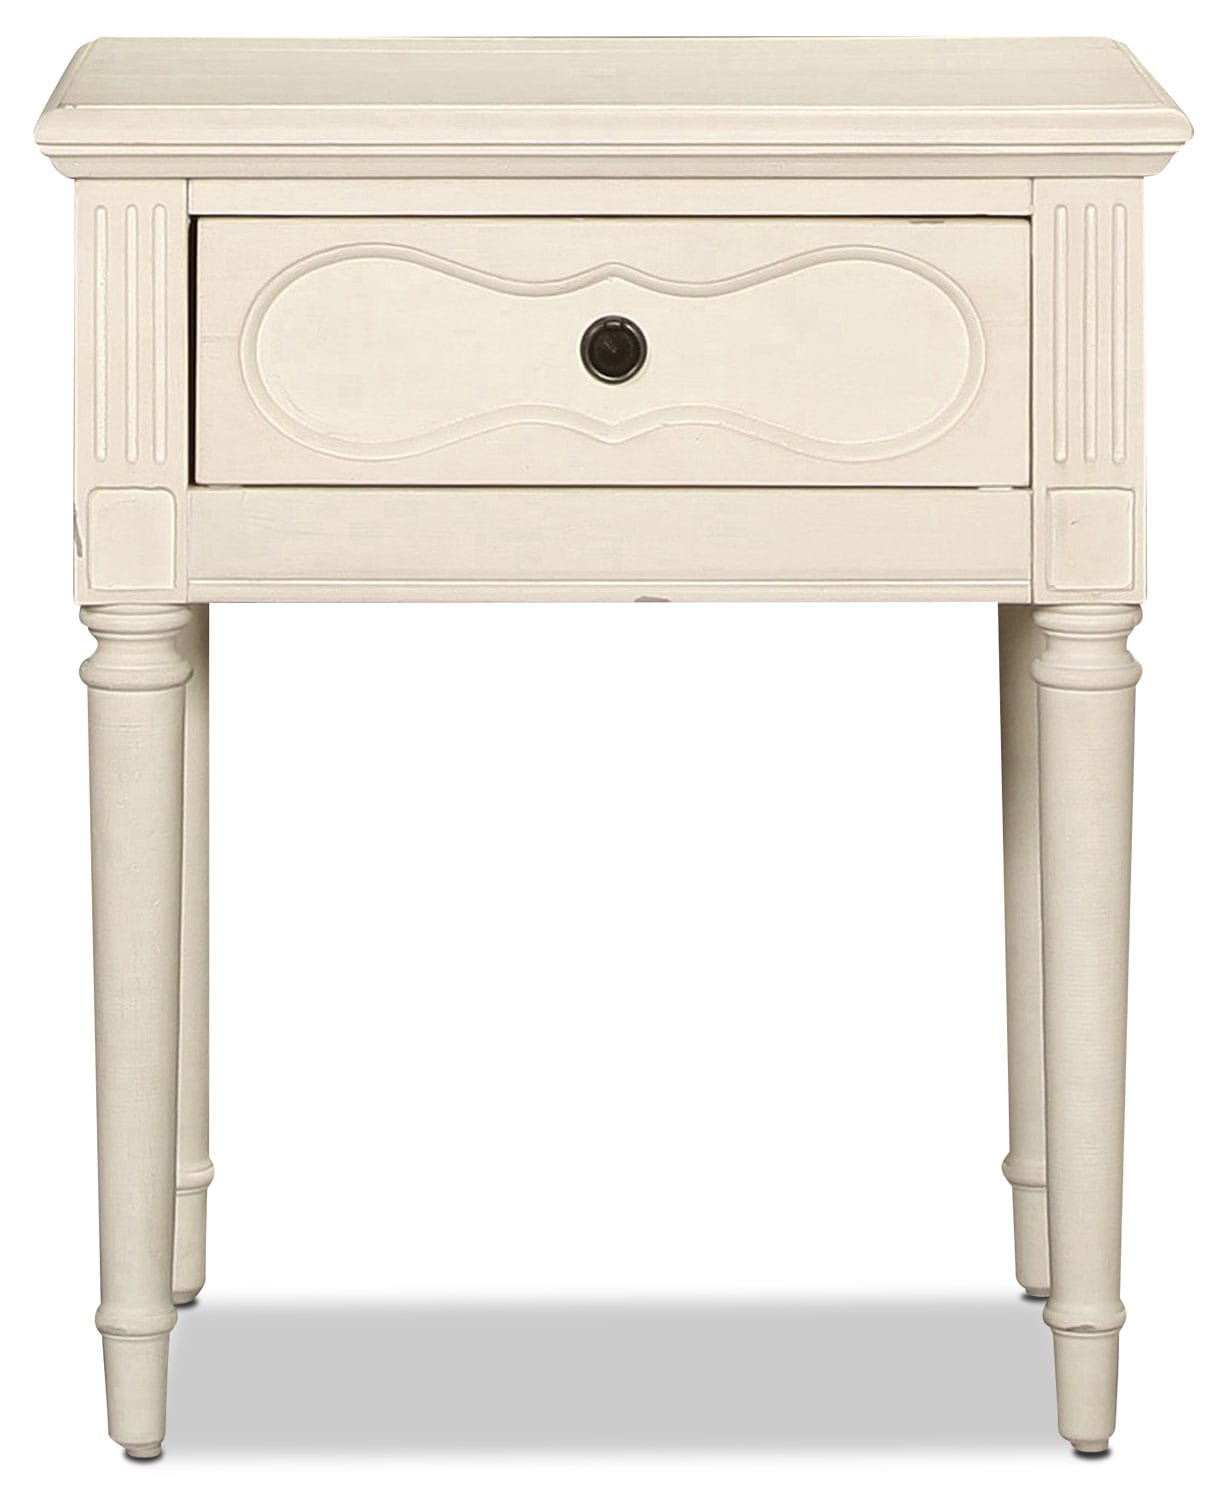 Bedroom Furniture - Magnolia Home French Inspired Nightstand